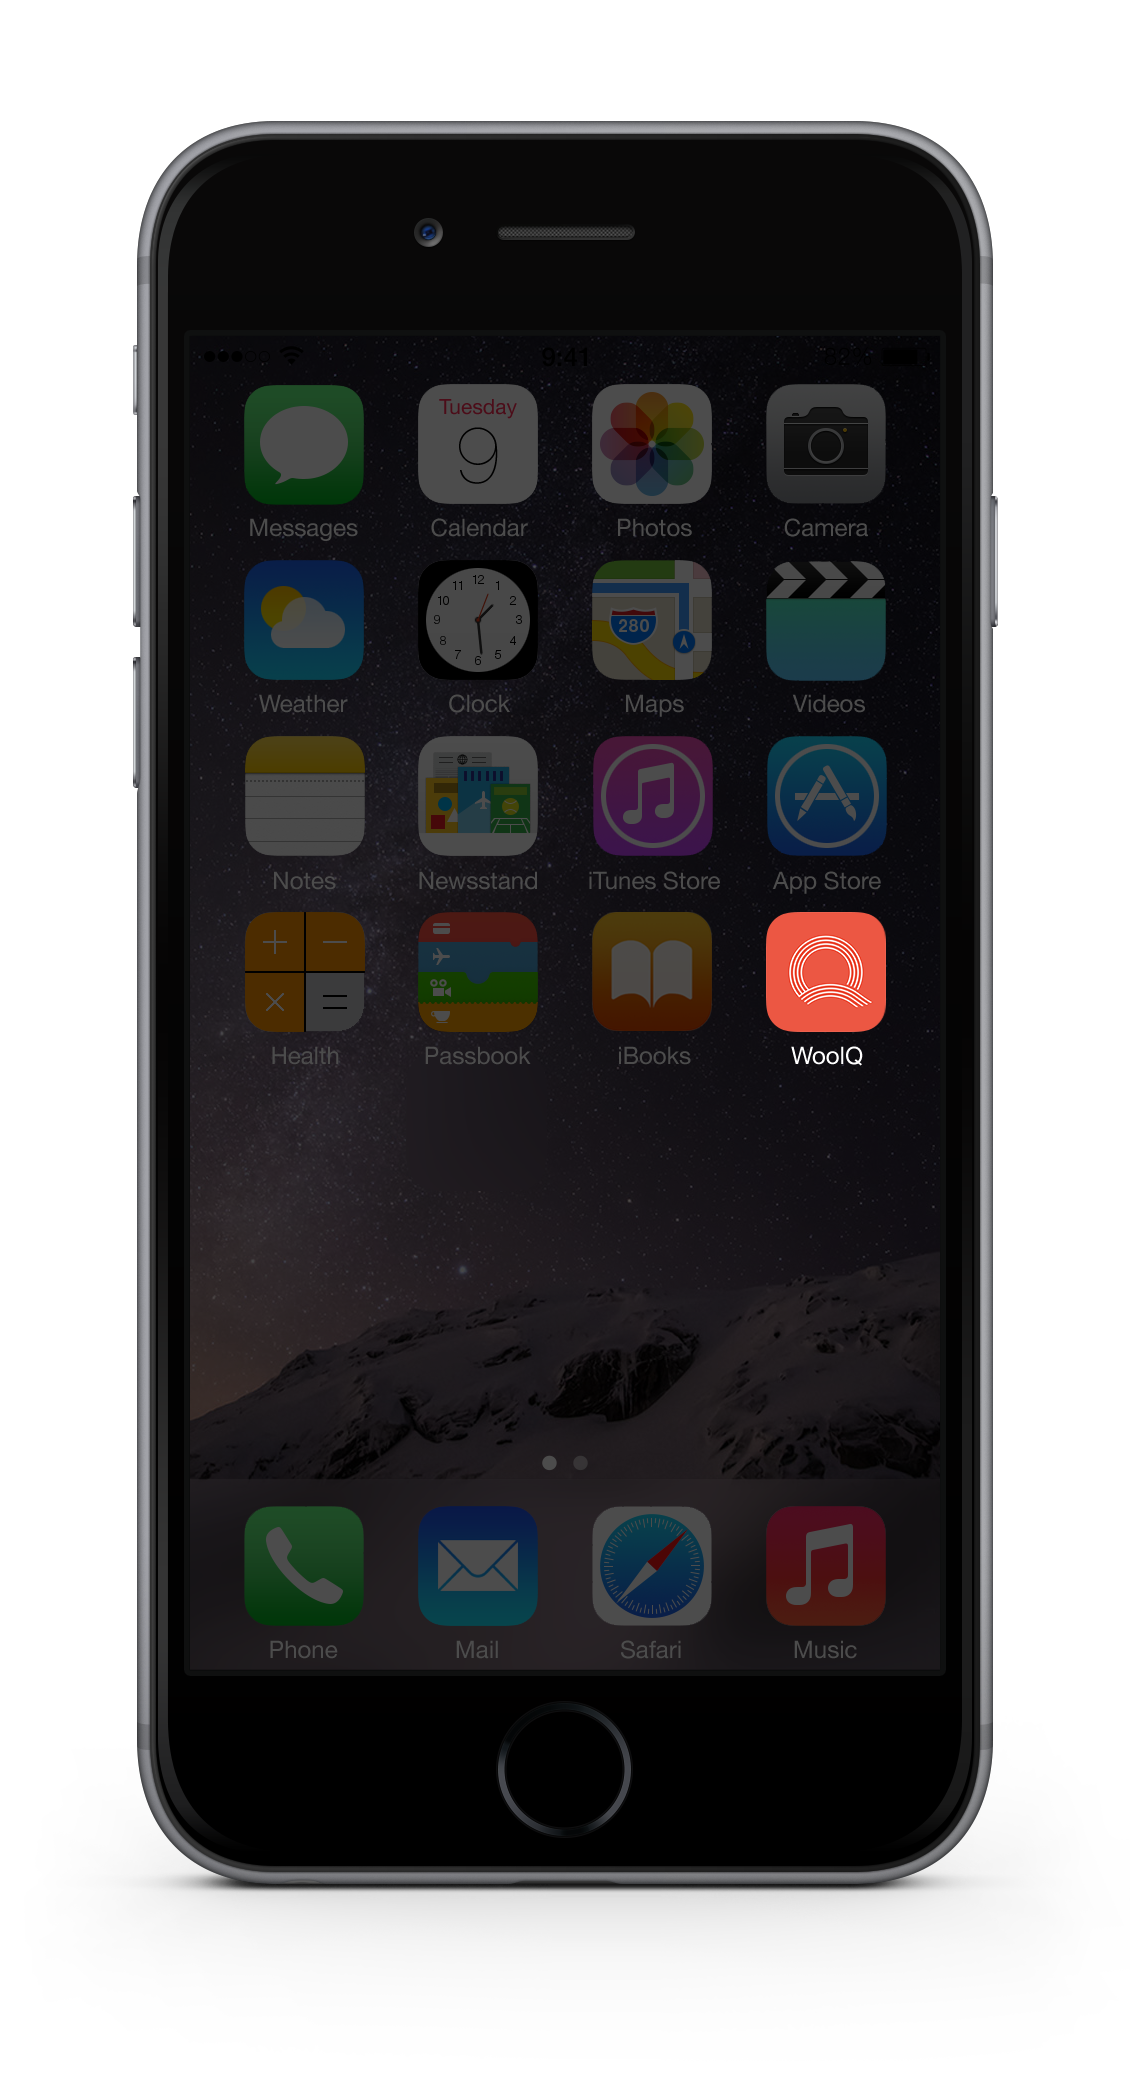 WoolQ-AppIcon-iPhone6.png